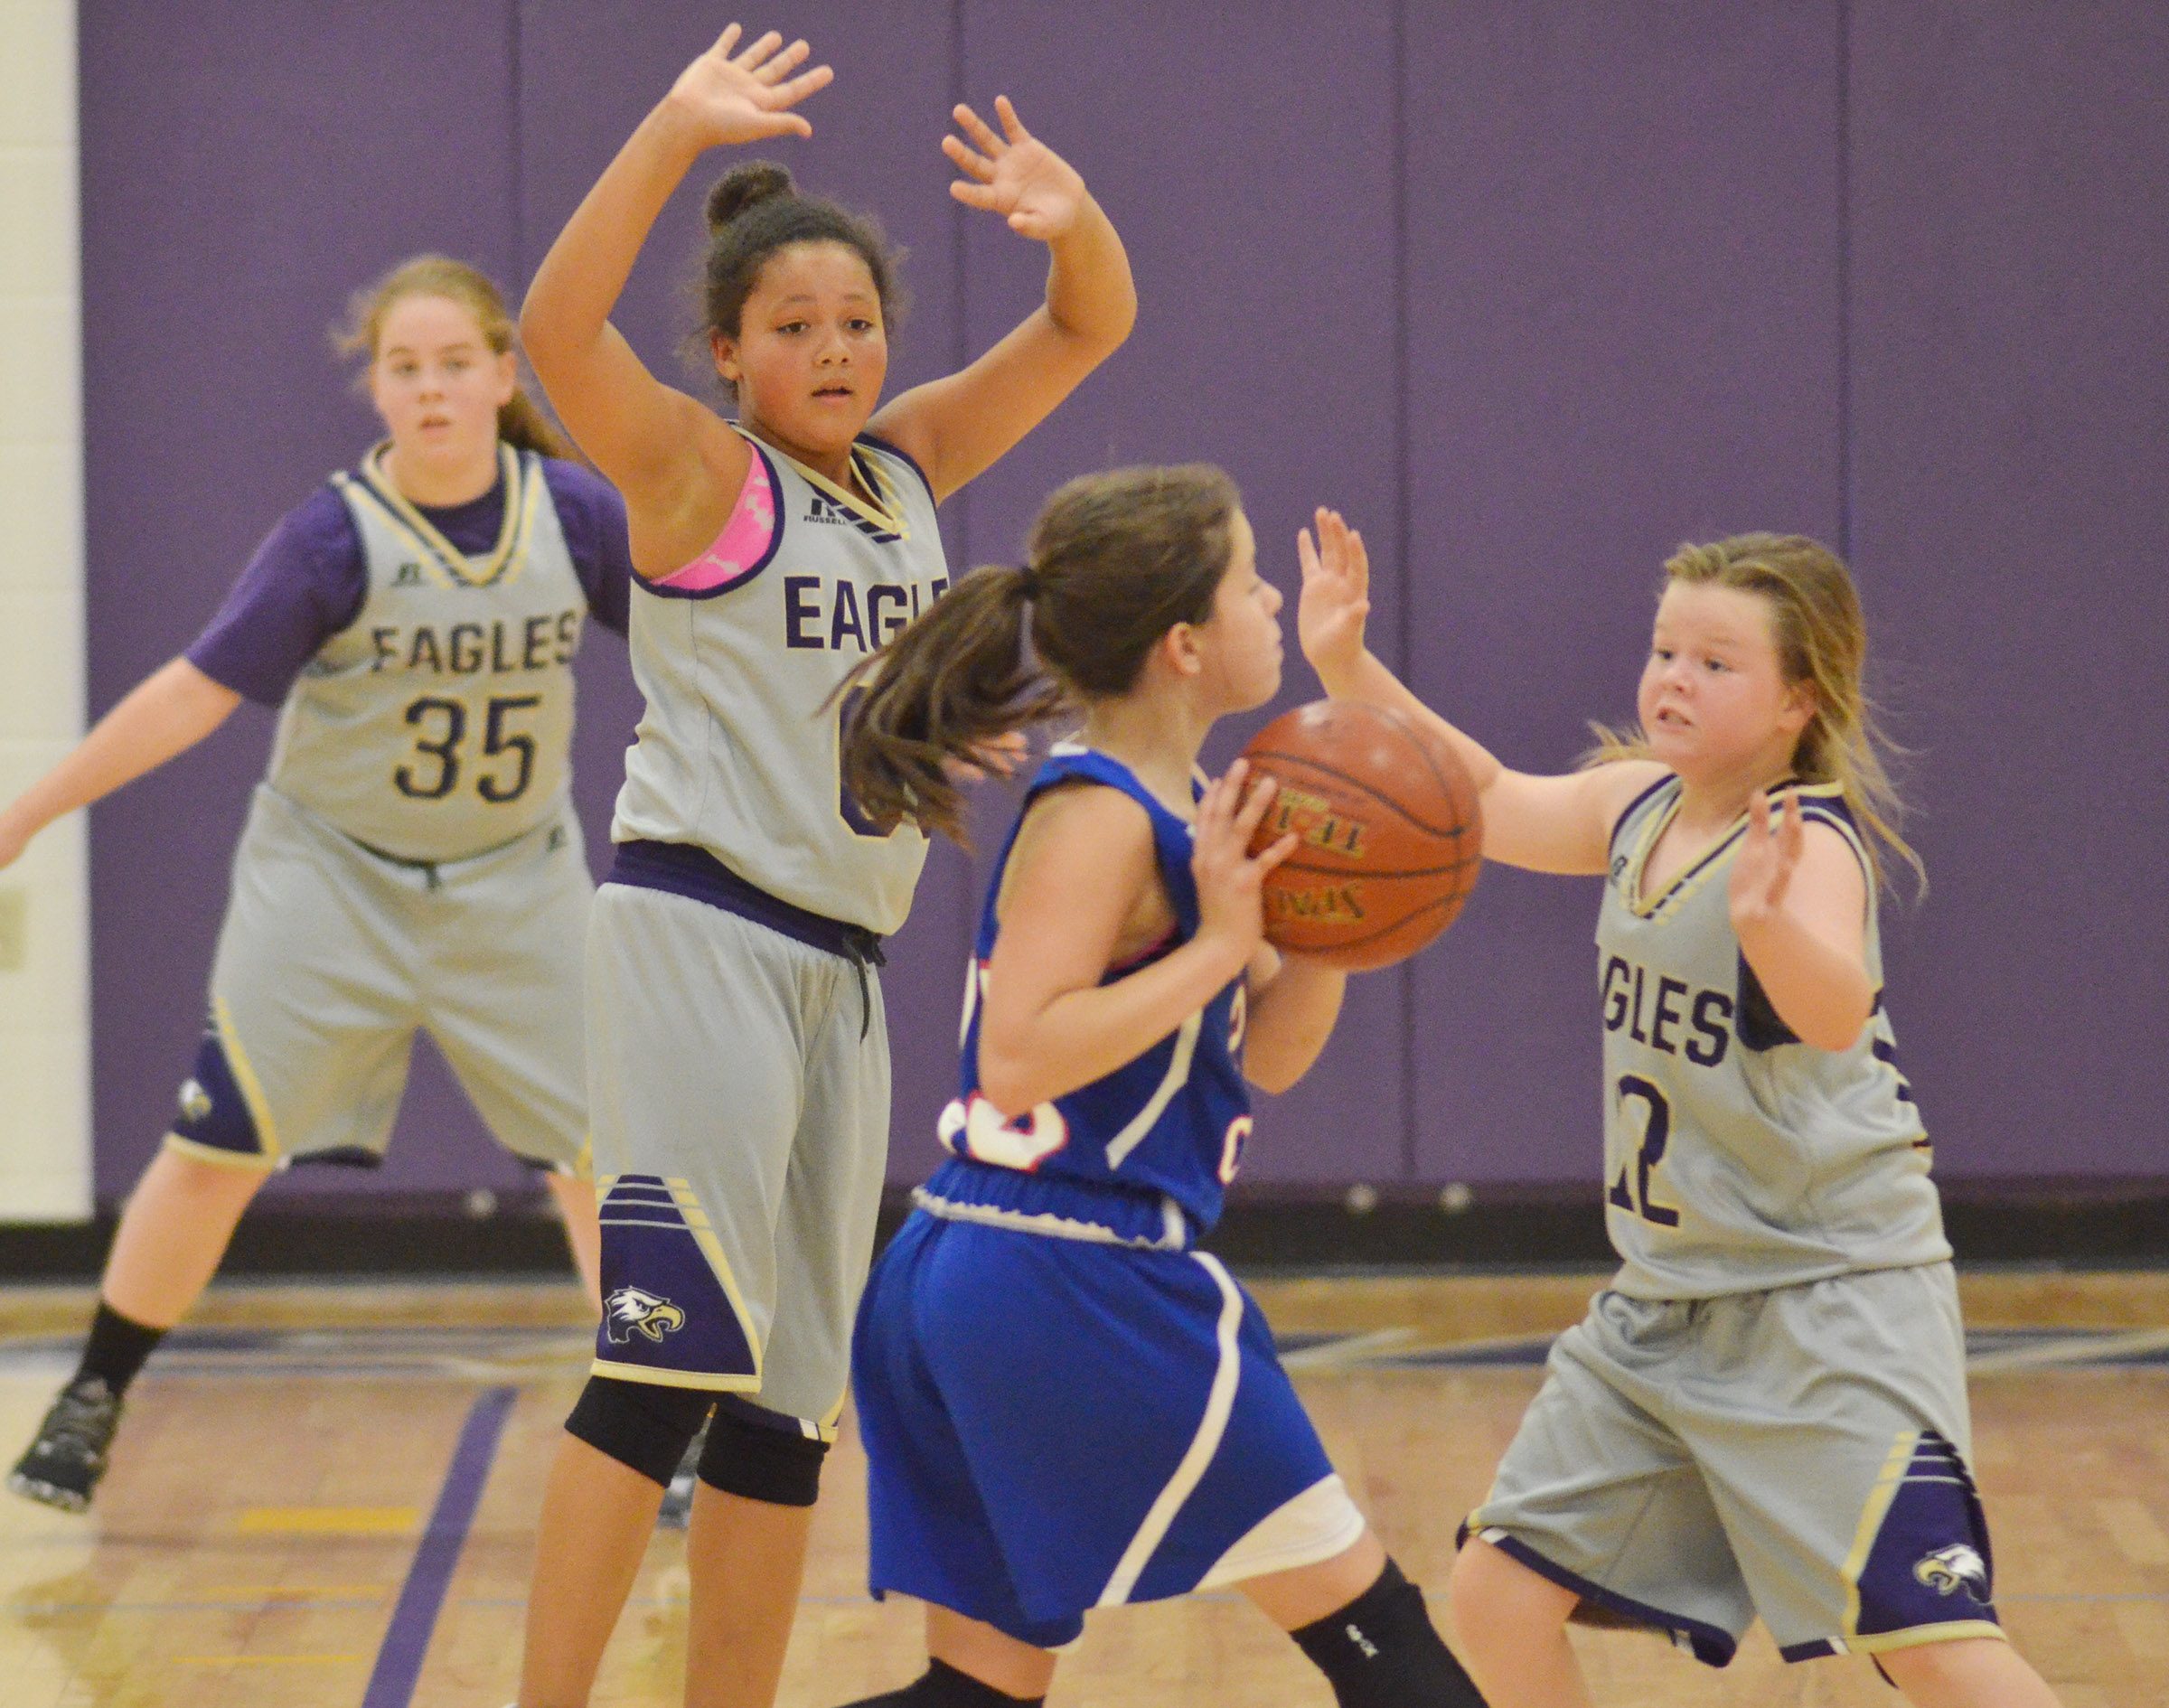 CMS sixth-grader Layla Steen, at left, and Campbellsville Elementary School fifth-graders Kenya Bridgewater and Miley Hash play defense.